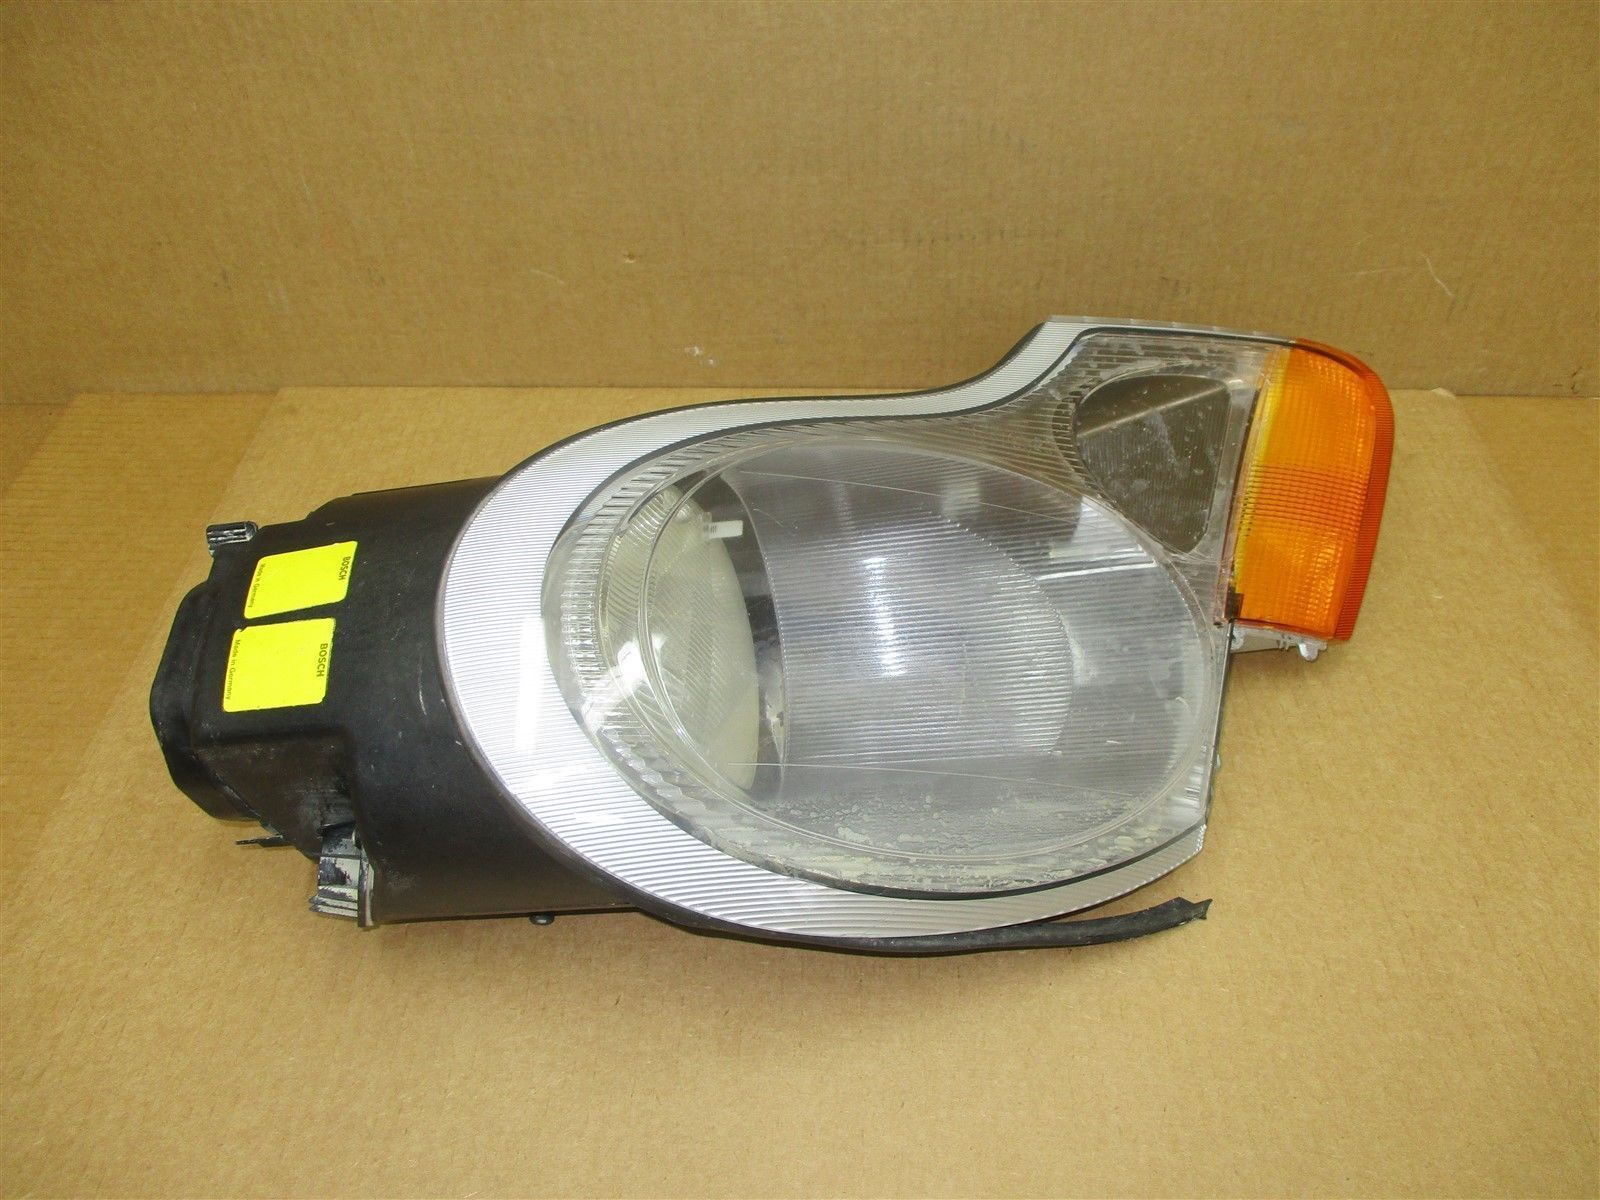 99 Carrera 4 911 Porsche 996 R HALOGEN HEADLIGHT 98663103204 HEAD LIGHT 89,437